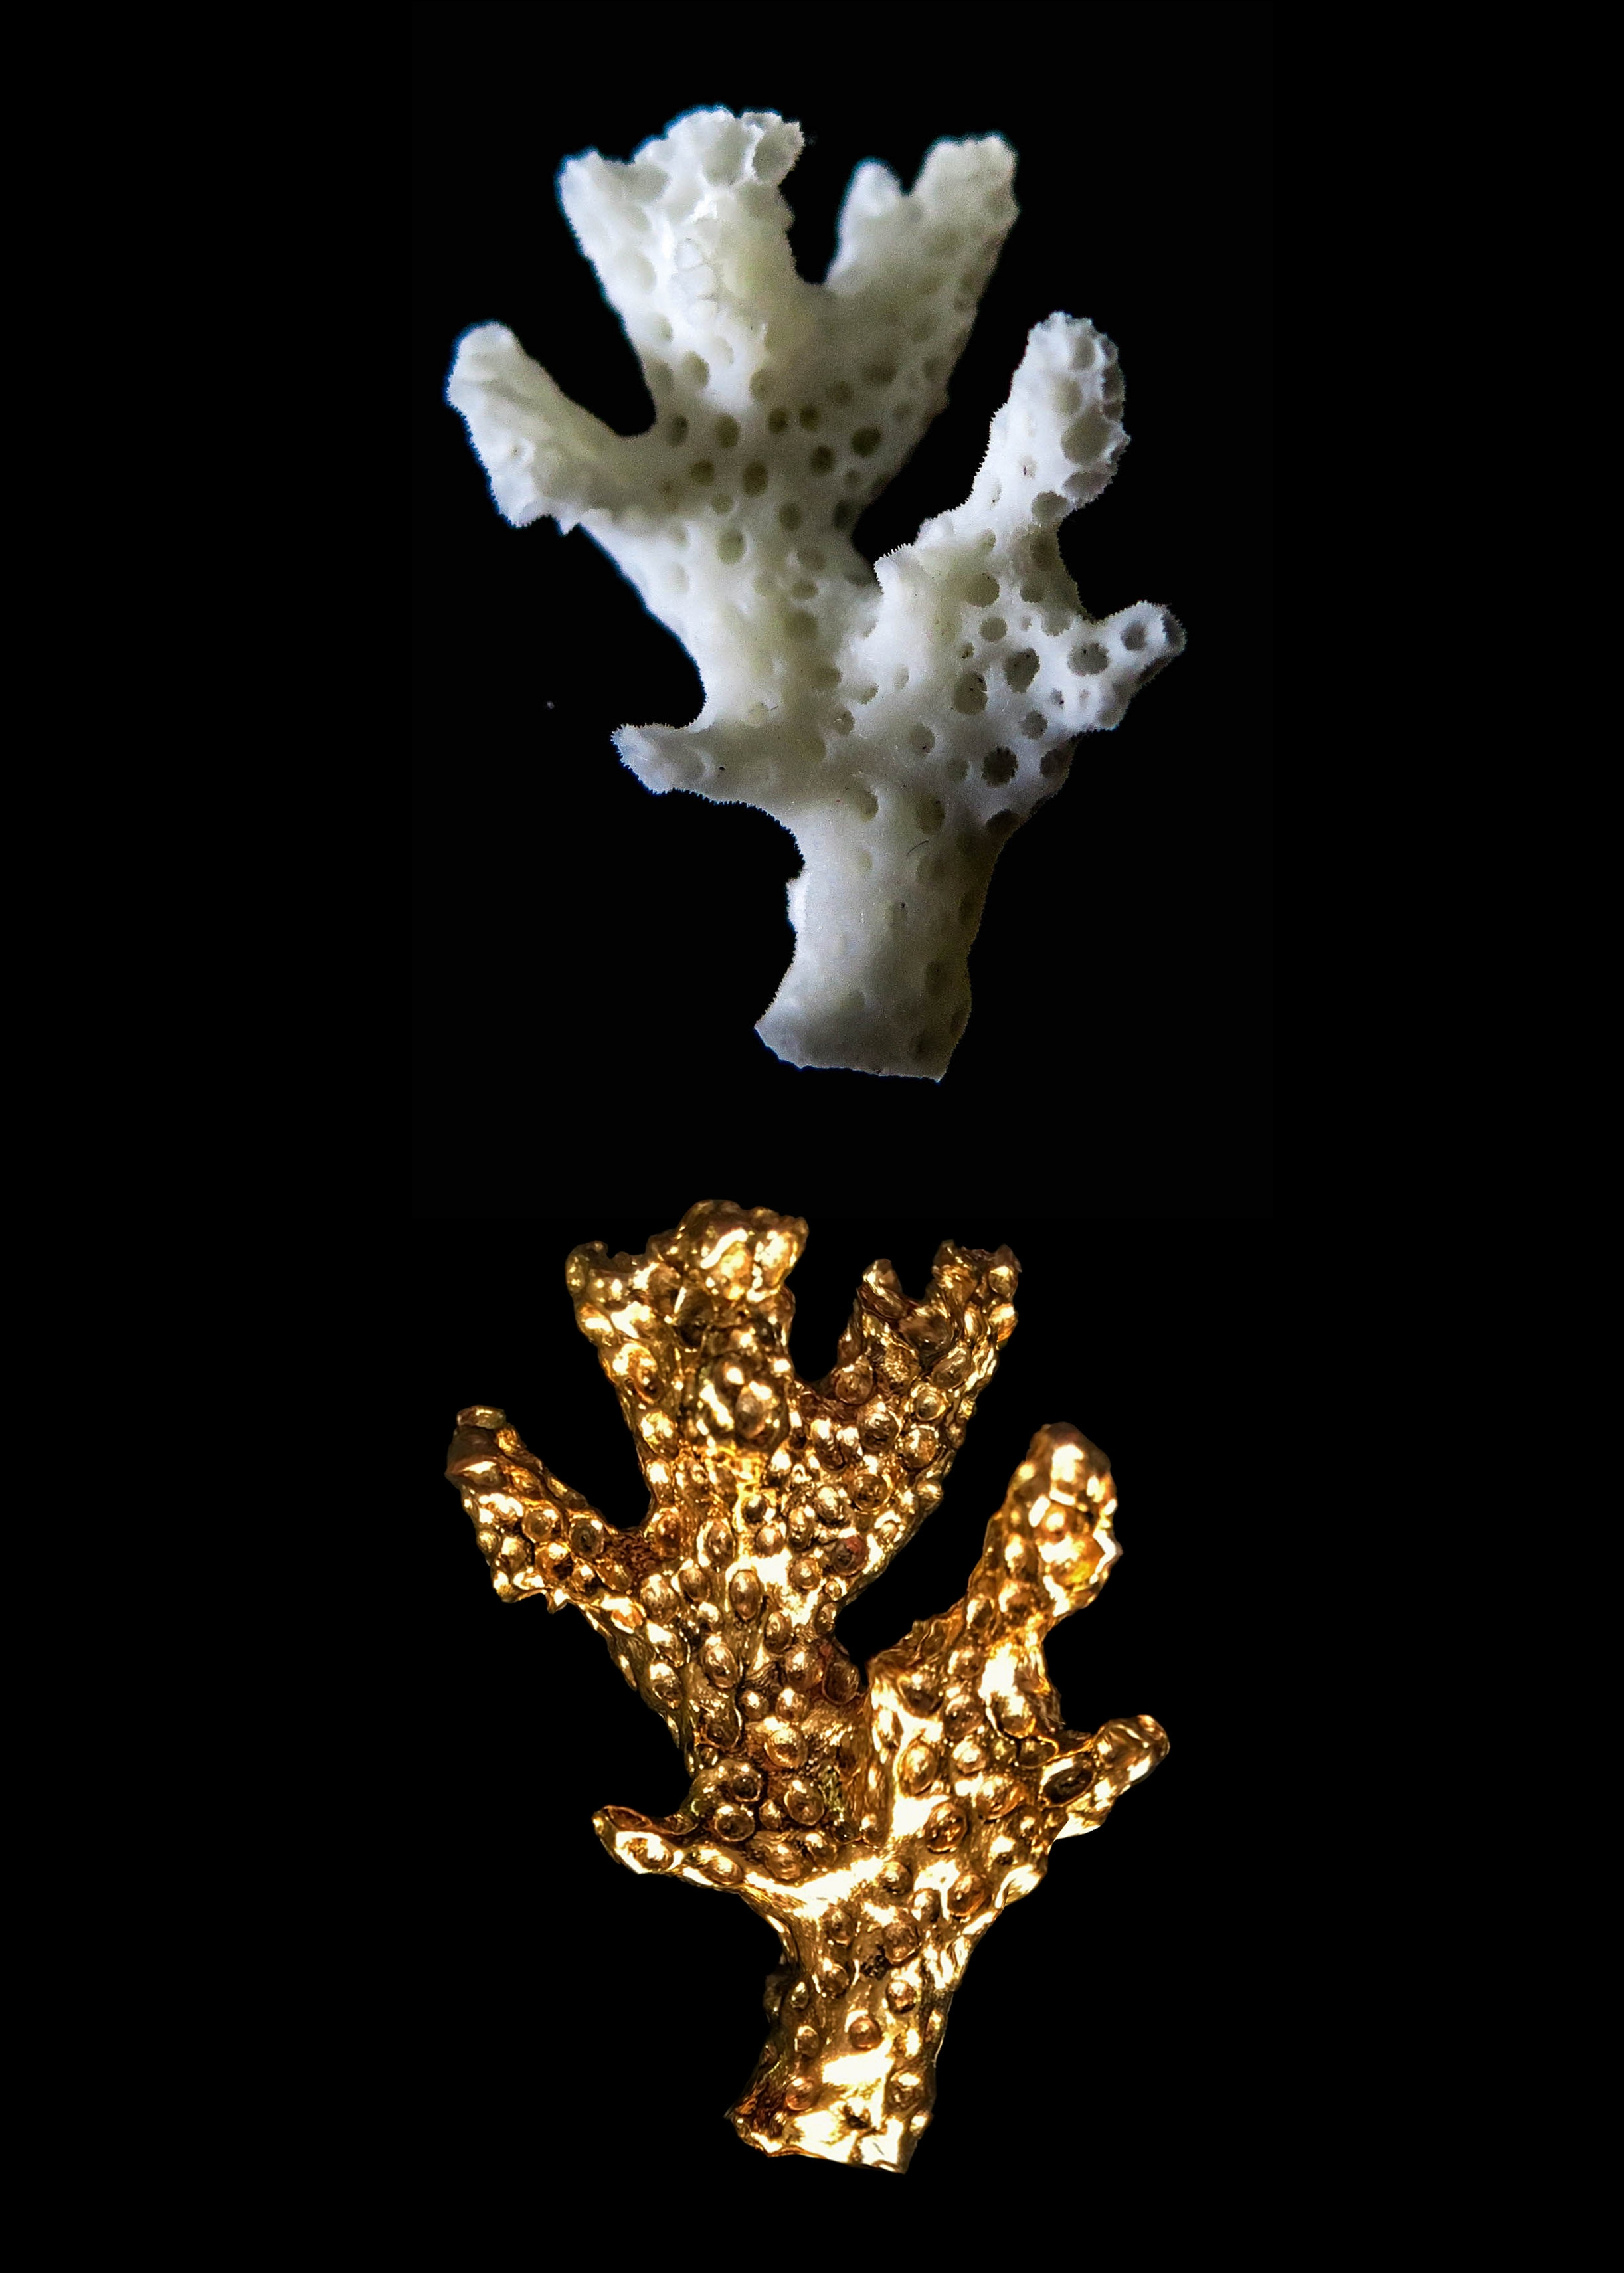 REPLICATE - Using our proprietary production techniques we can replicate coral specimens from your aquarium and work with you to design of a kind pieces.Creating custom pieces in this way directly connects your aquarium to positive environmental impact. The coral you nurture at home will help grow coral and rebuild reefs around the world.